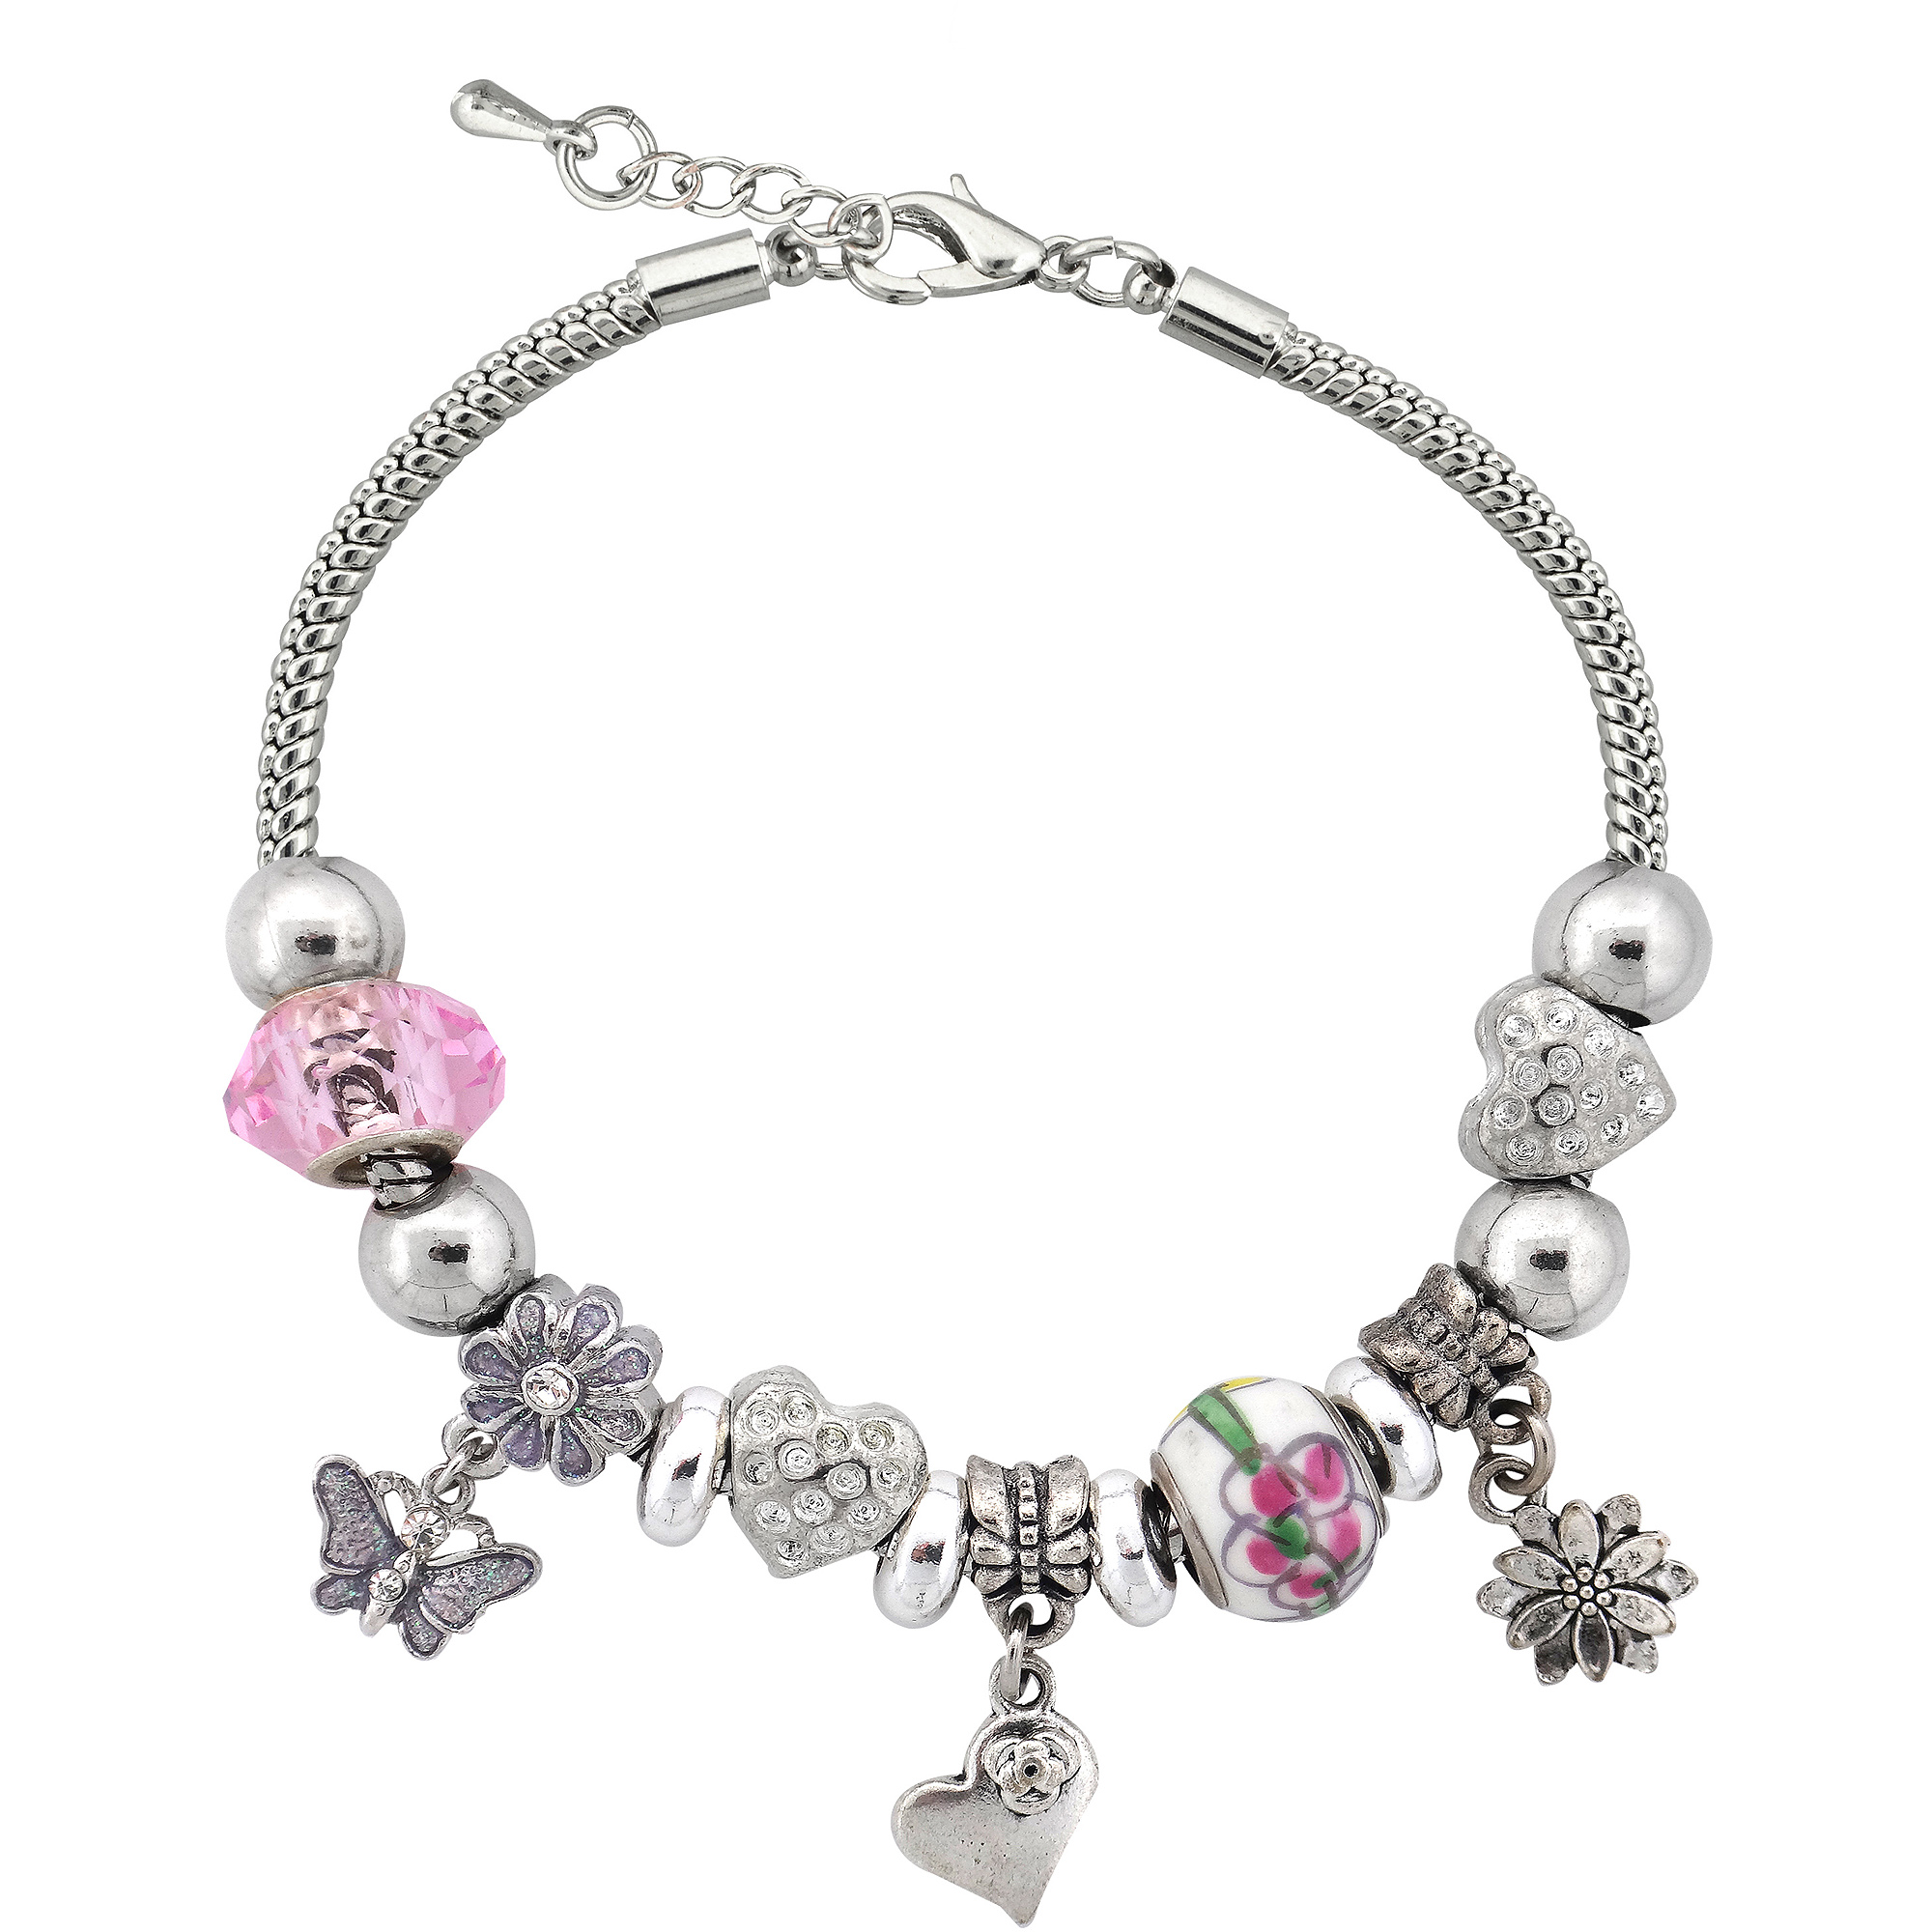 Silvertone Spring Flower Charm and Glass Beads Bracelet with Extender, 7.5""